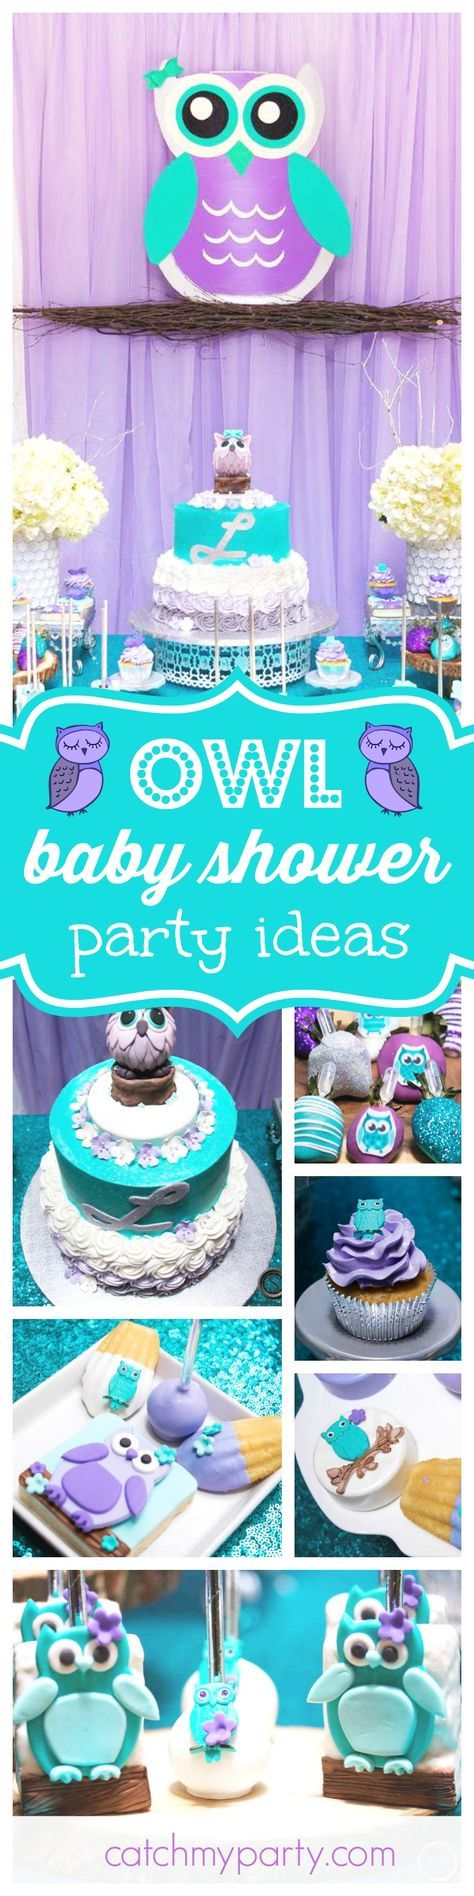 Don't miss this fantastic Whoooos Whoooo Owl themed Baby Shower! The cake is great!! See more party ideas and share yours at CatchMyParty.com